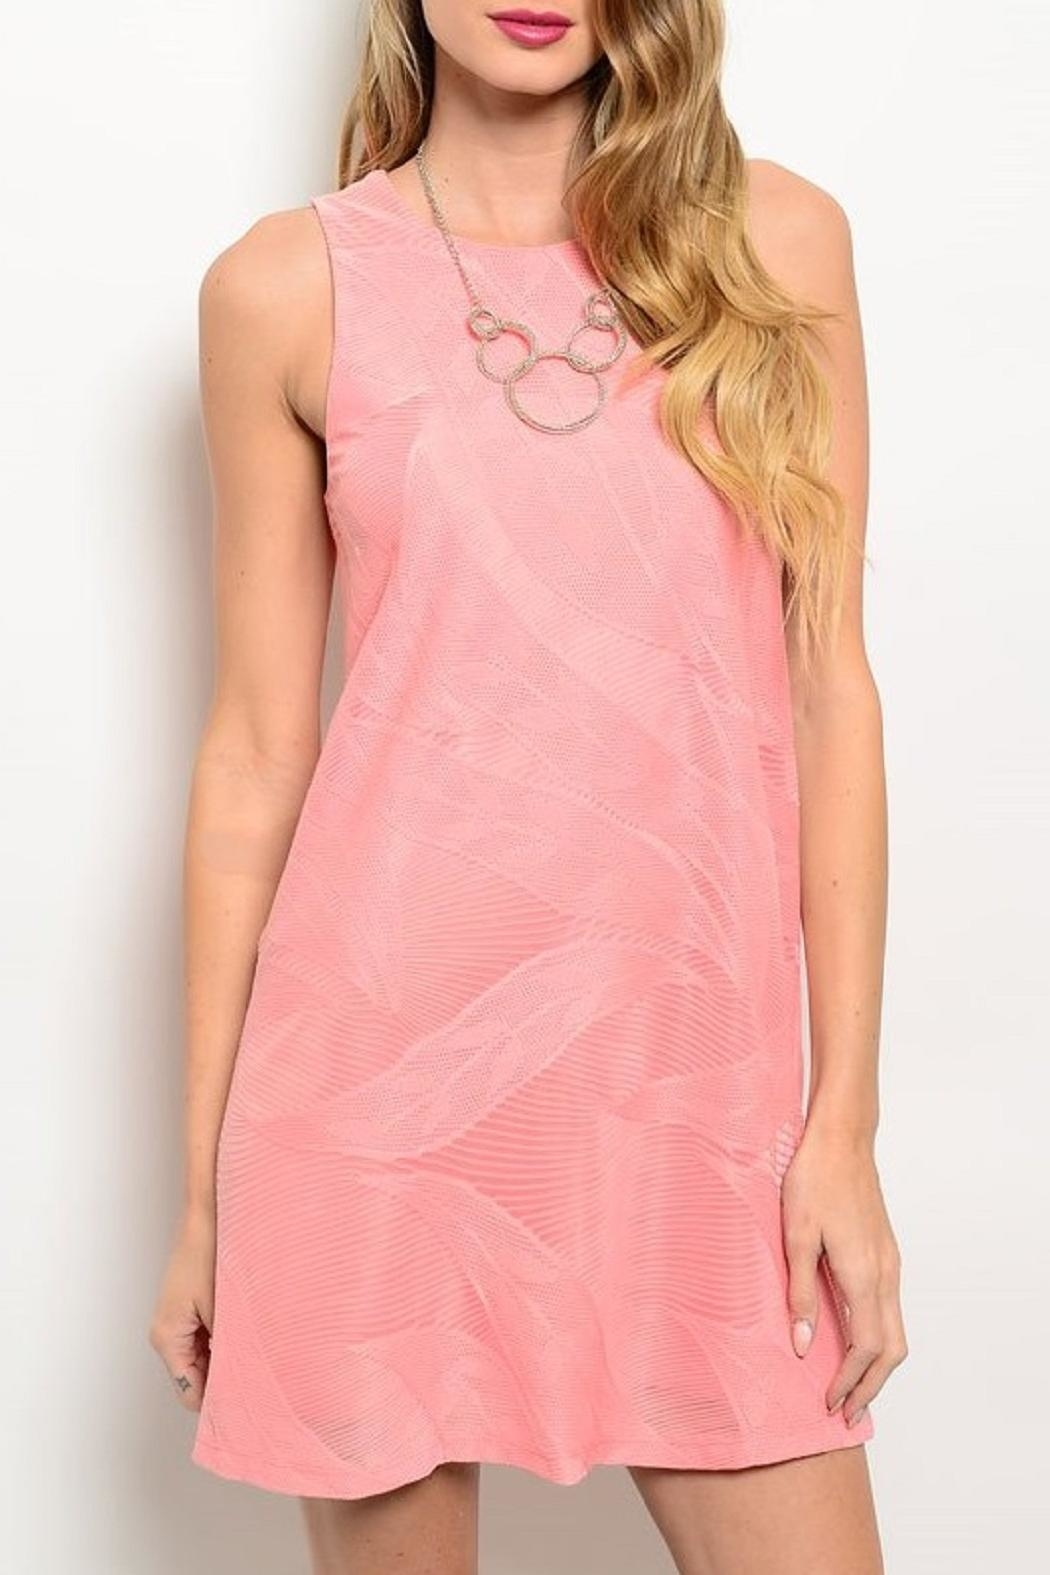 Adore Clothes & More Coral Summer Dress - Main Image